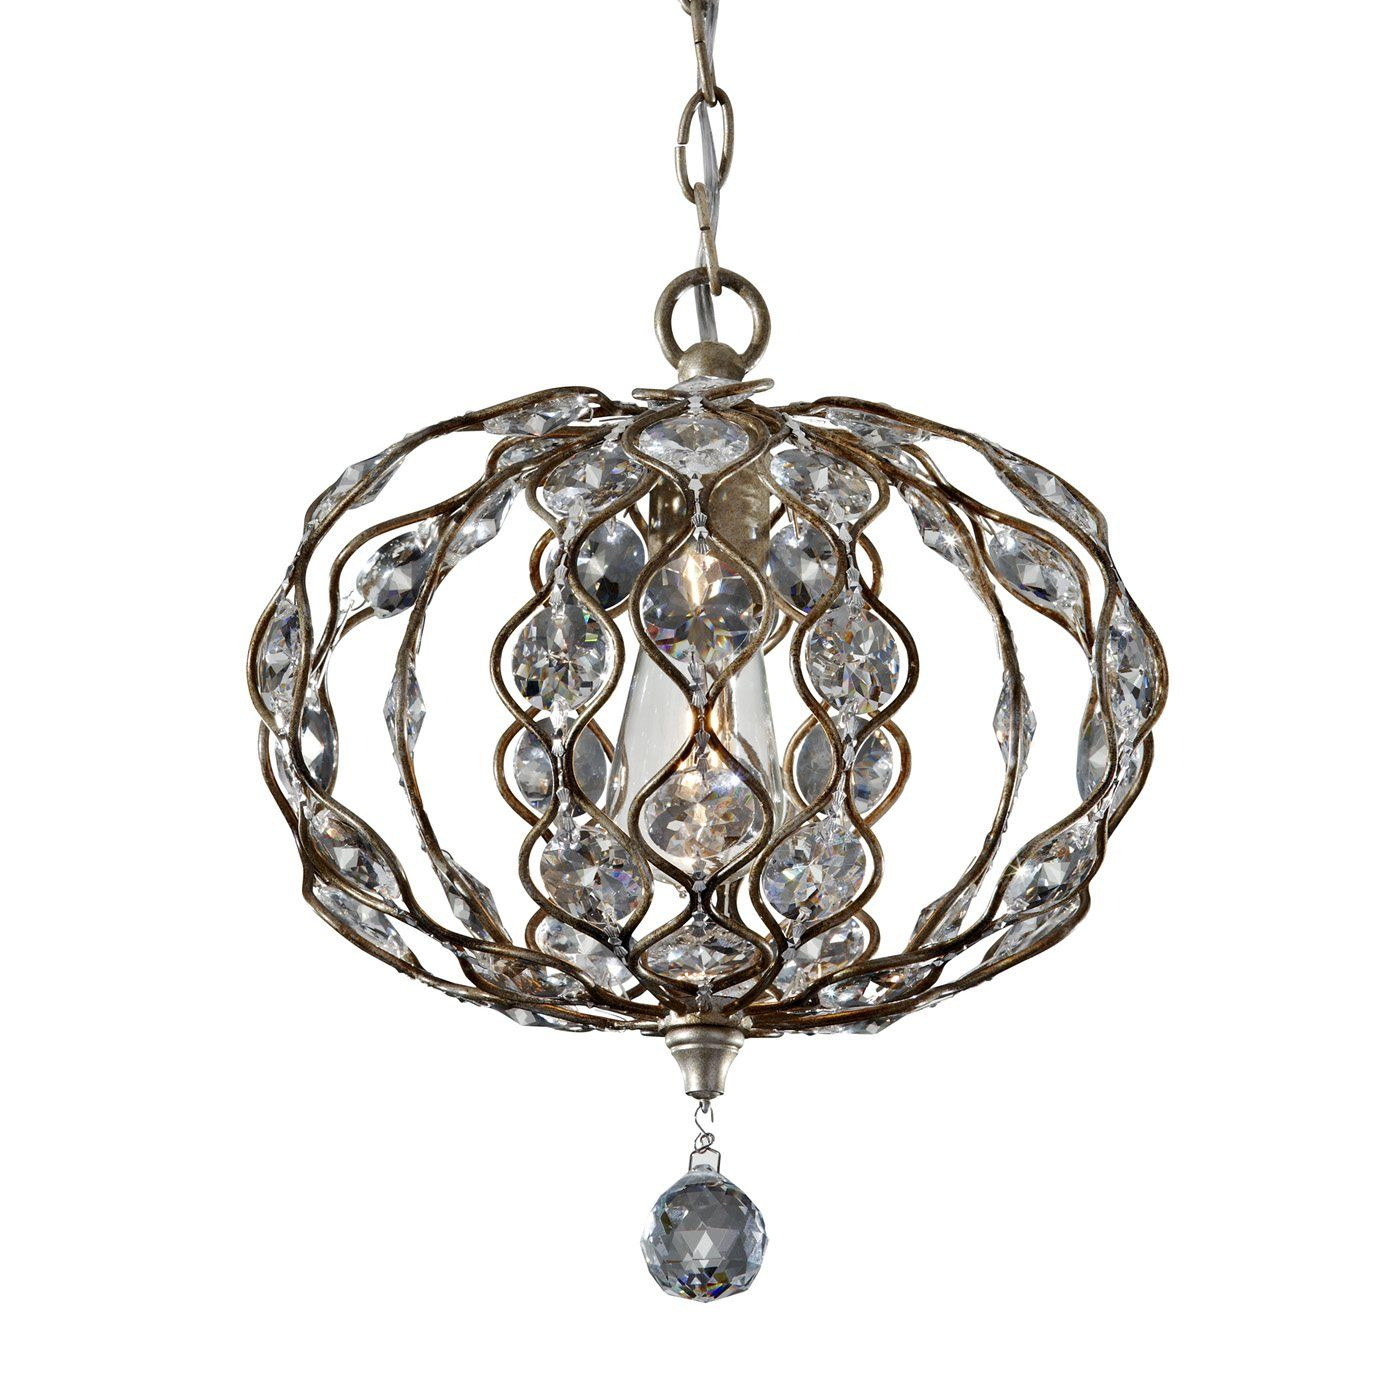 Use coupon code feiss10 to save 10 on this feiss f27421bus leila 1 the leila single chandelier pendant by feiss lighting partnered with elstead lighting is available from luxury lighting the feiss leila ceiling light is arubaitofo Choice Image